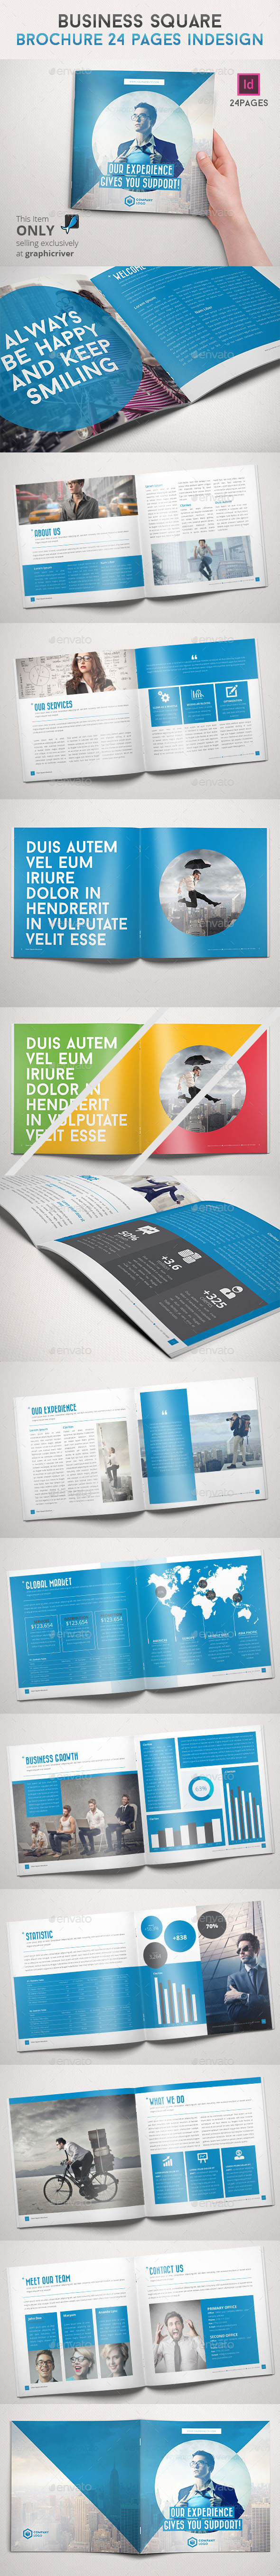 Business Square Brochure 24 Pages Indesign - Informational Brochures